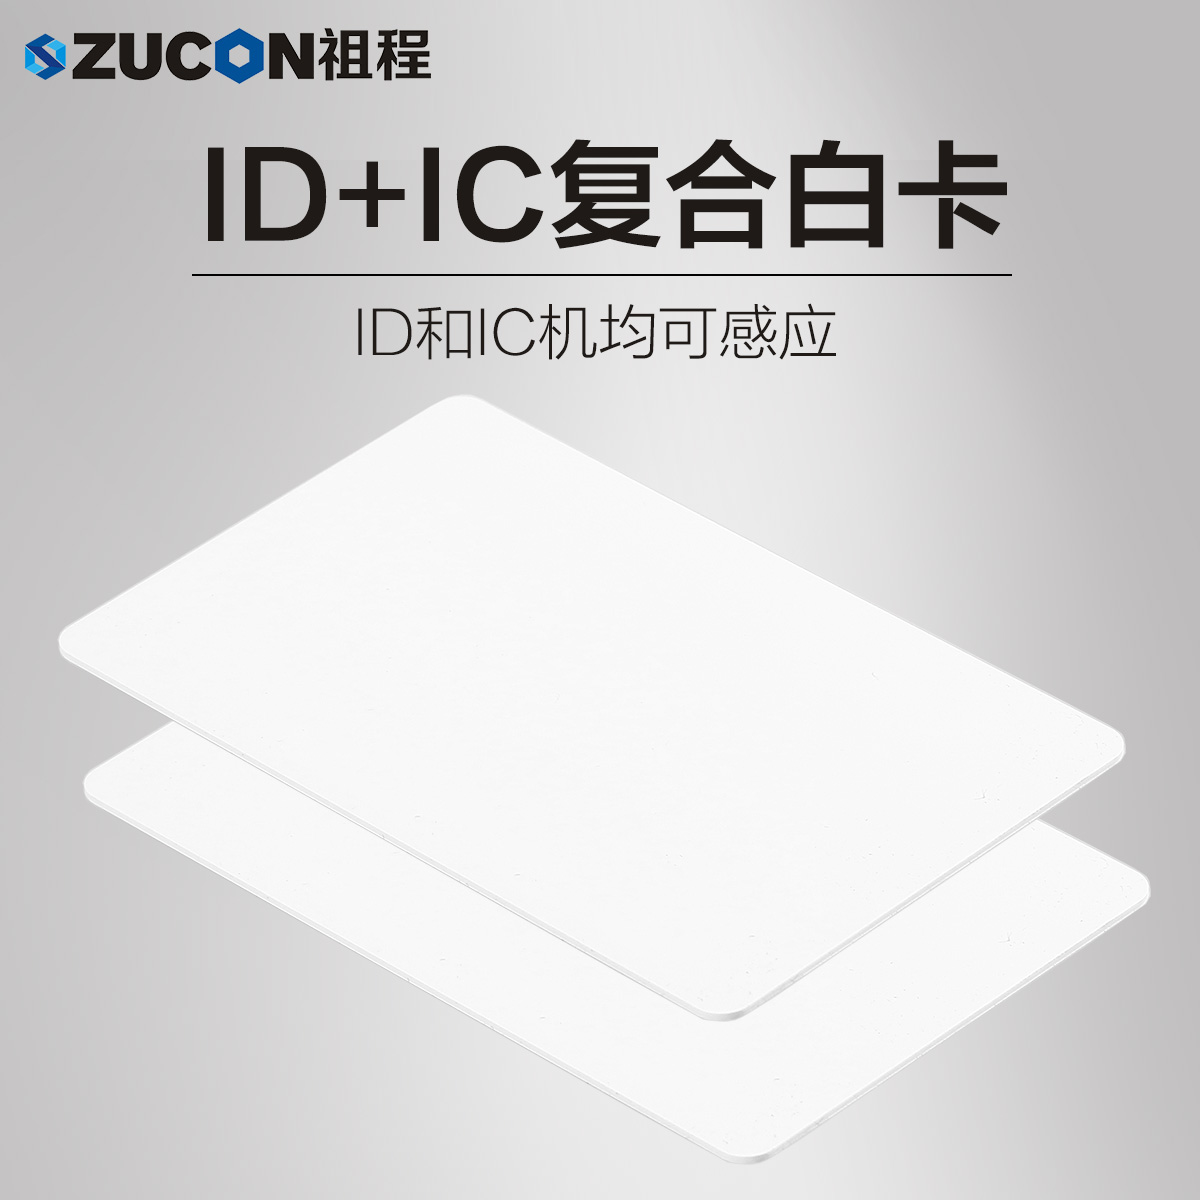 ZUCON Zucheng Access Control Attendance System Selection of Induction Card  ID Card Attendance Card EM Card Thin Card Thick Card Color Card